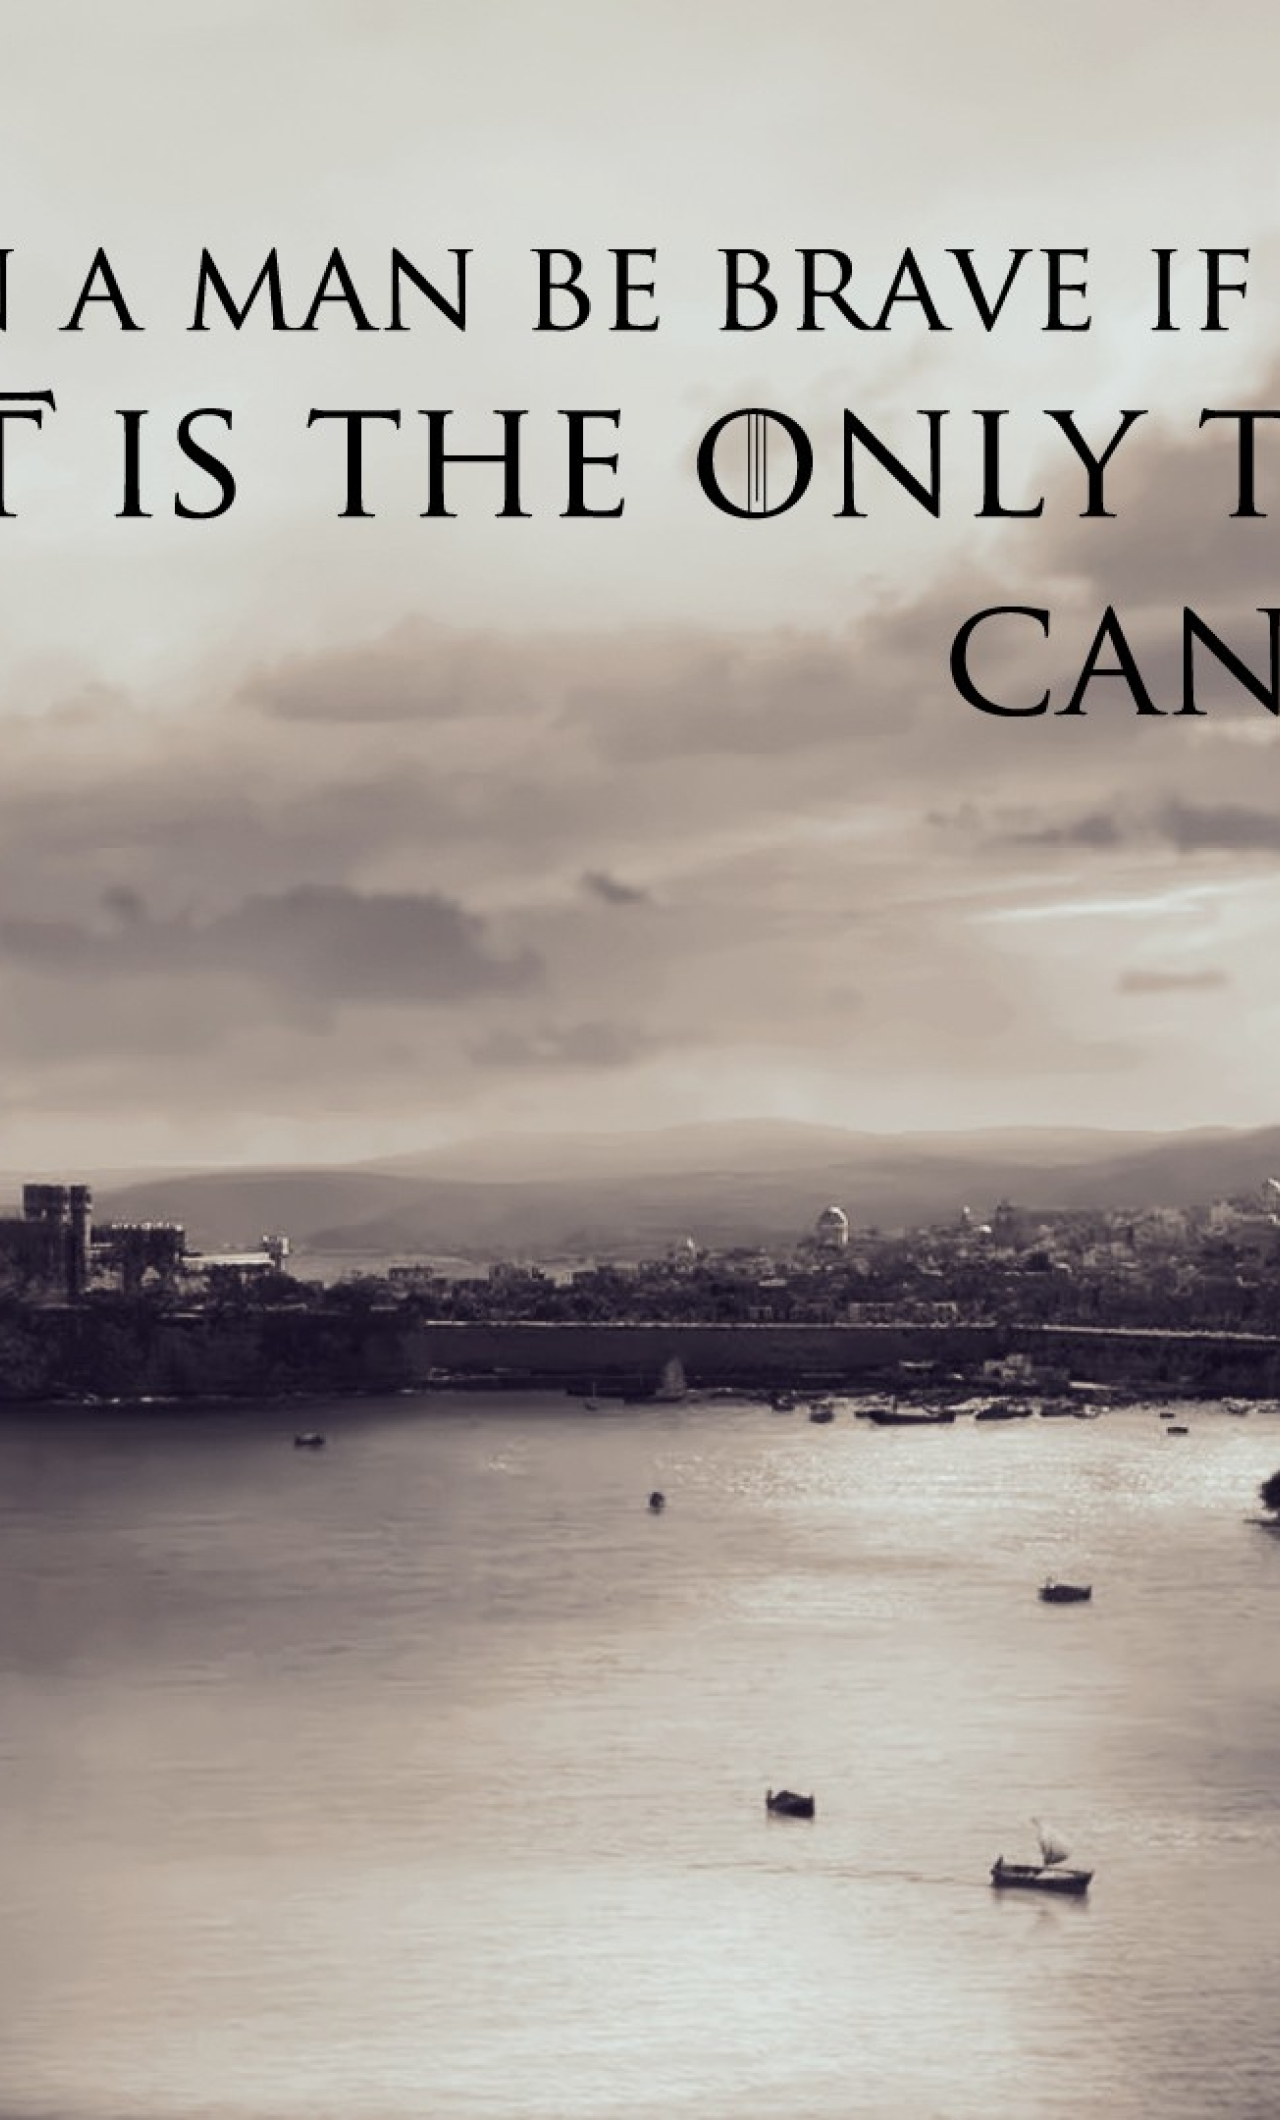 Download Quotes Braviary Eddard Ned Stark Game Of Thrones 840x1336